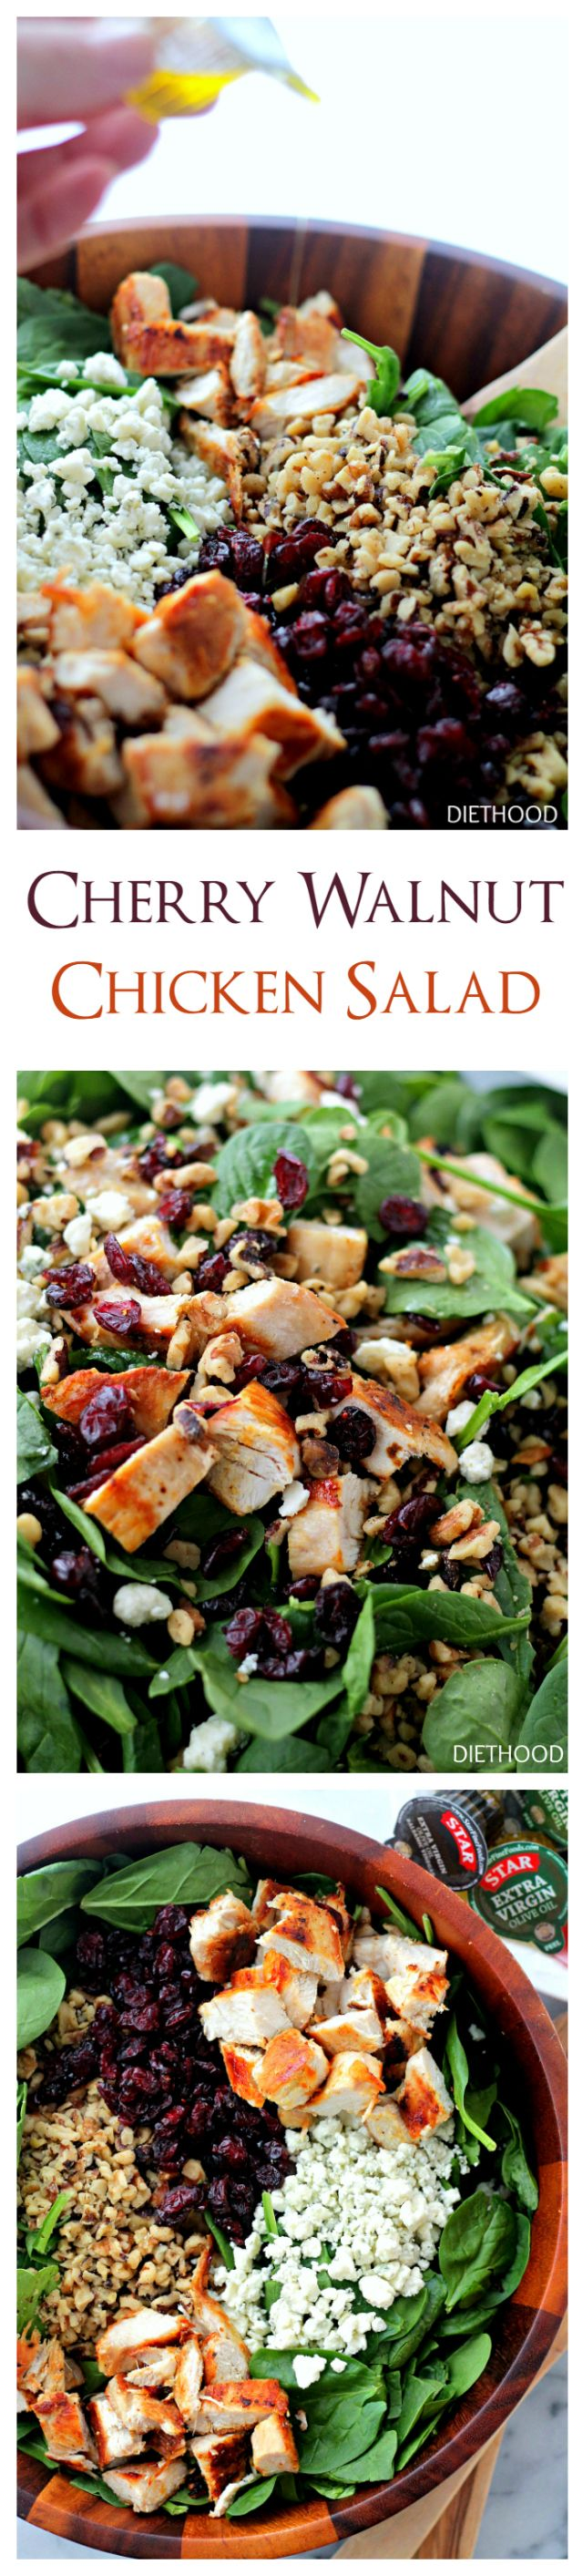 Cherry Walnut Chicken Salad | www.diethood.com | Delicious chicken salad featuring a combination of dried cherries, walnuts and baby spinach tossed with a simple olive oil and vinegar dressing.